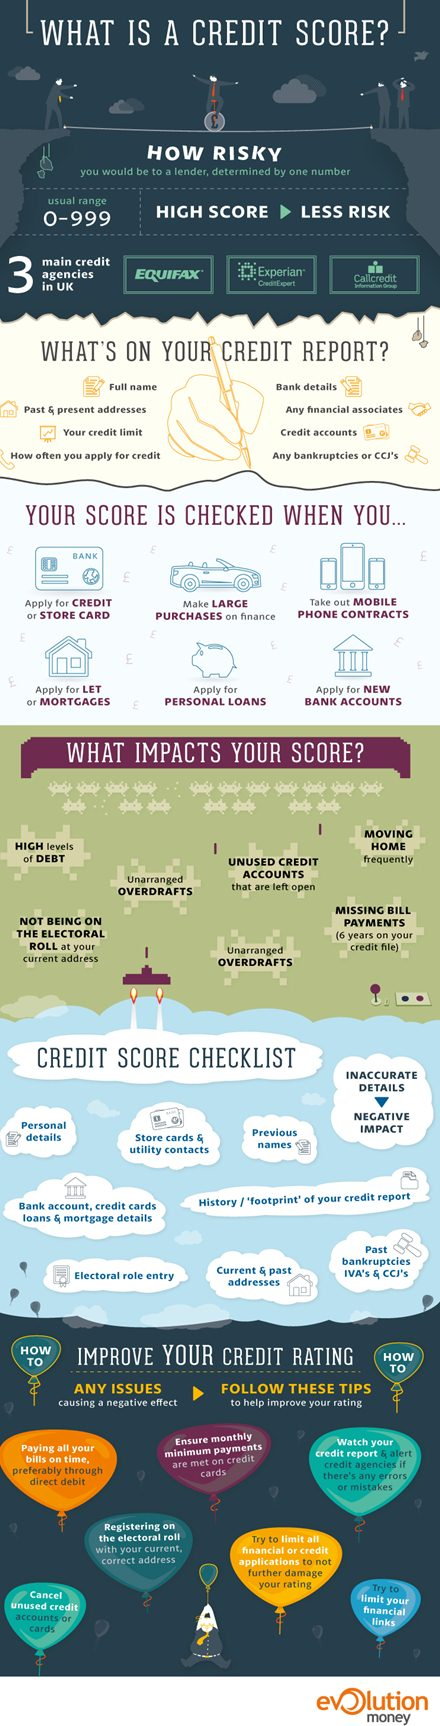 Credit-score-infographic-final